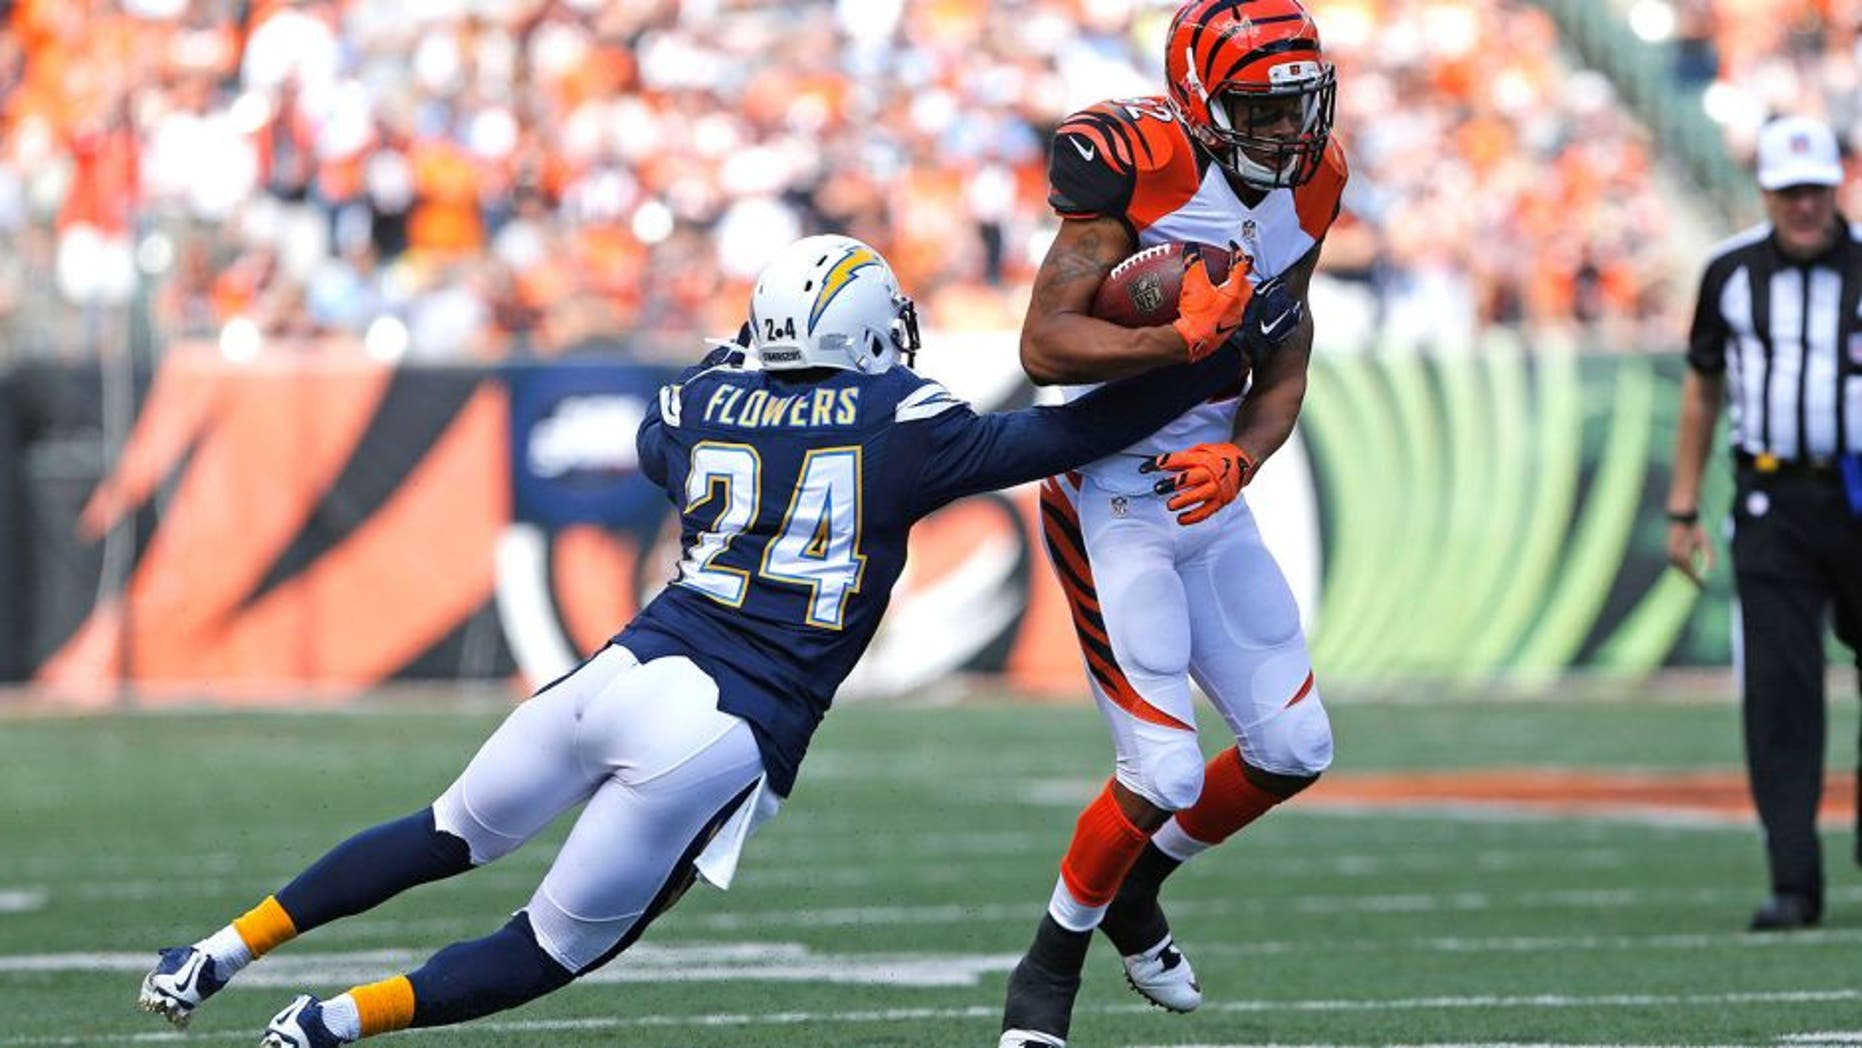 Sep 20, 2015; Cincinnati, OH, USA; San Diego Chargers cornerback Brandon Flowers (24) attempts to tackle Cincinnati Bengals wide receiver Marvin Jones (82) in the first half at Paul Brown Stadium. The Bengals won 24-19. Mandatory Credit: Aaron Doster-USA TODAY Sports